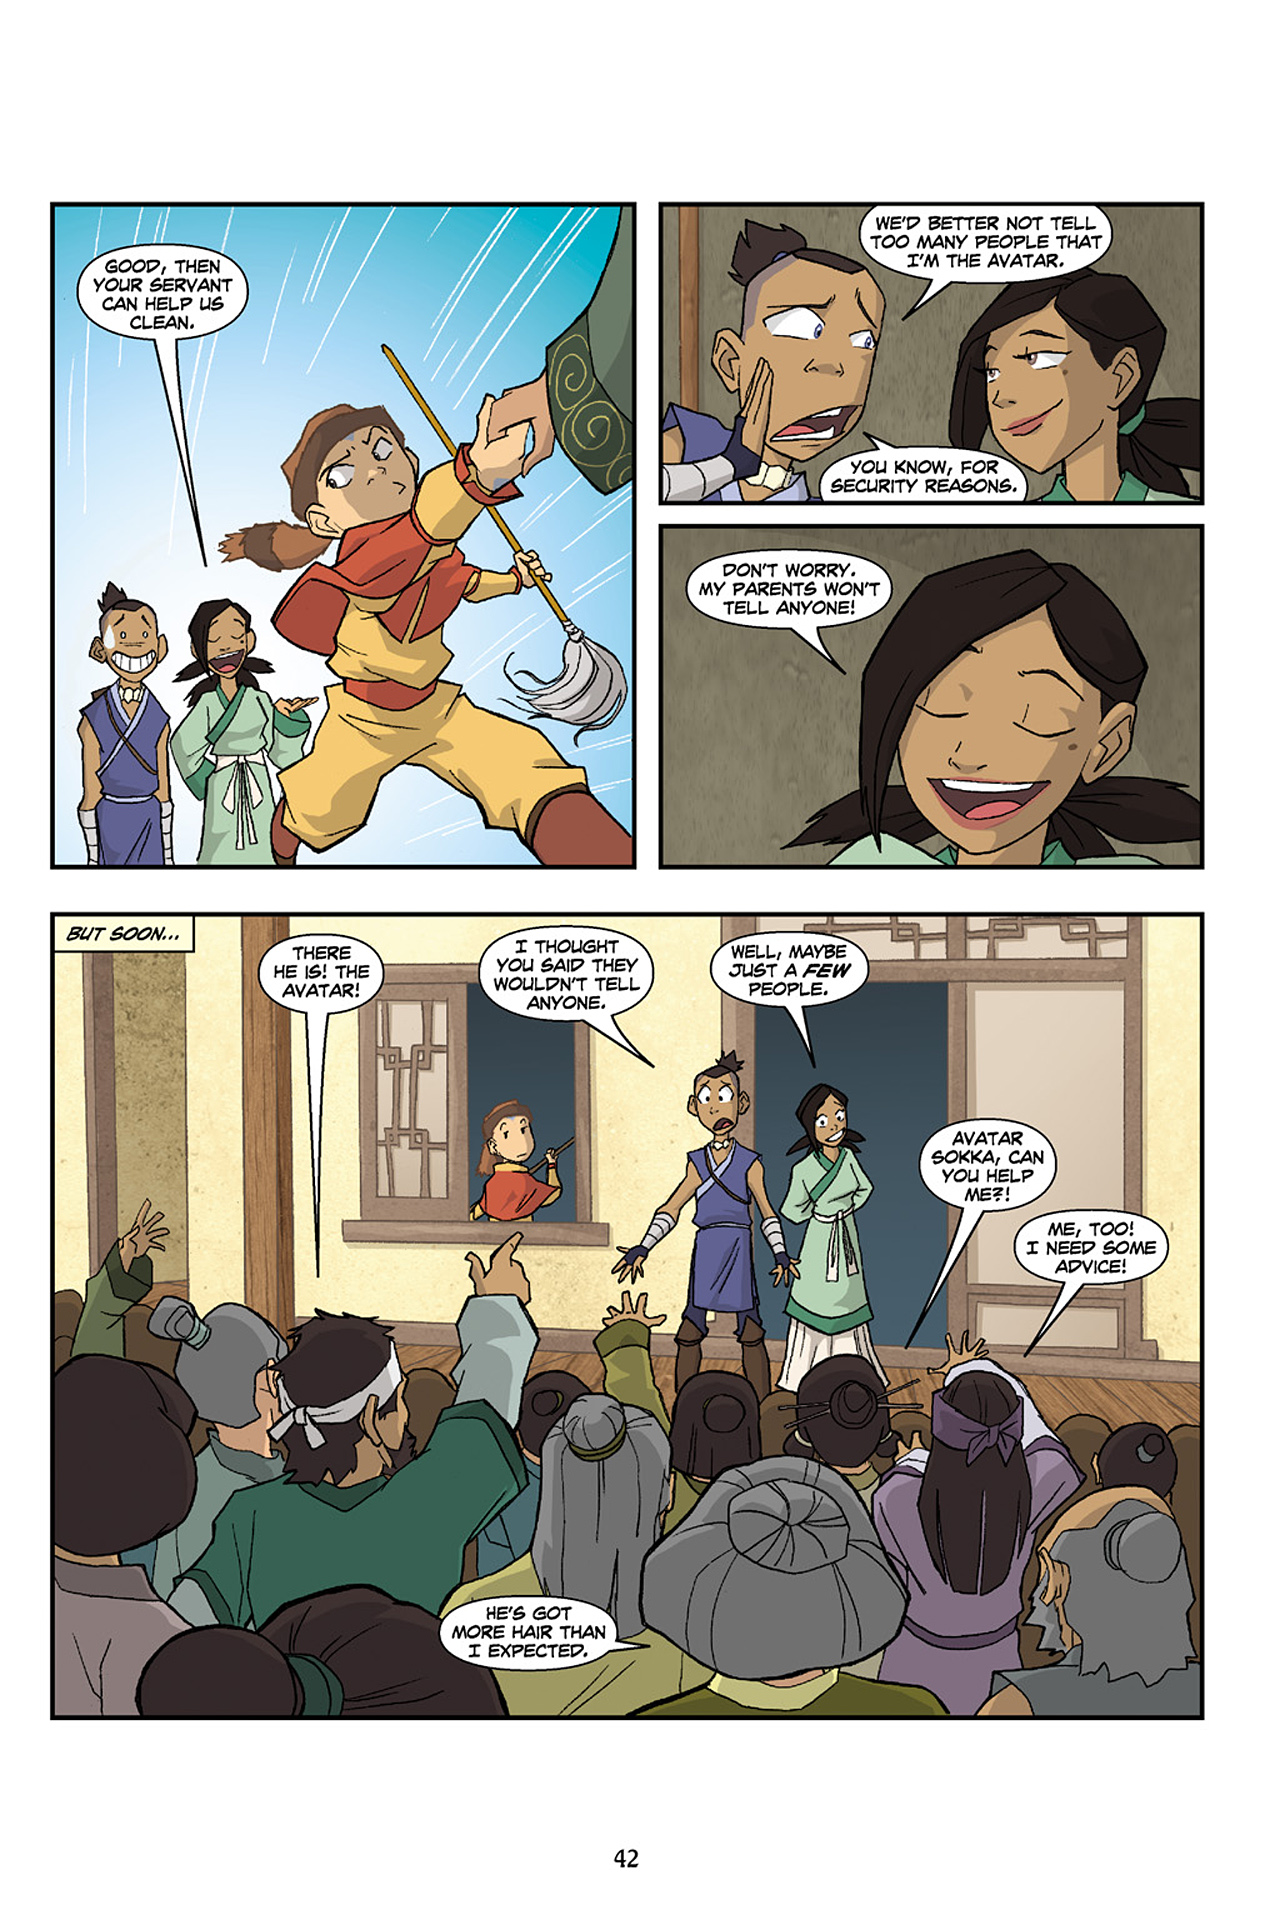 Nickelodeon Avatar: The Last Airbender - The Lost Adventures chap full pic 43